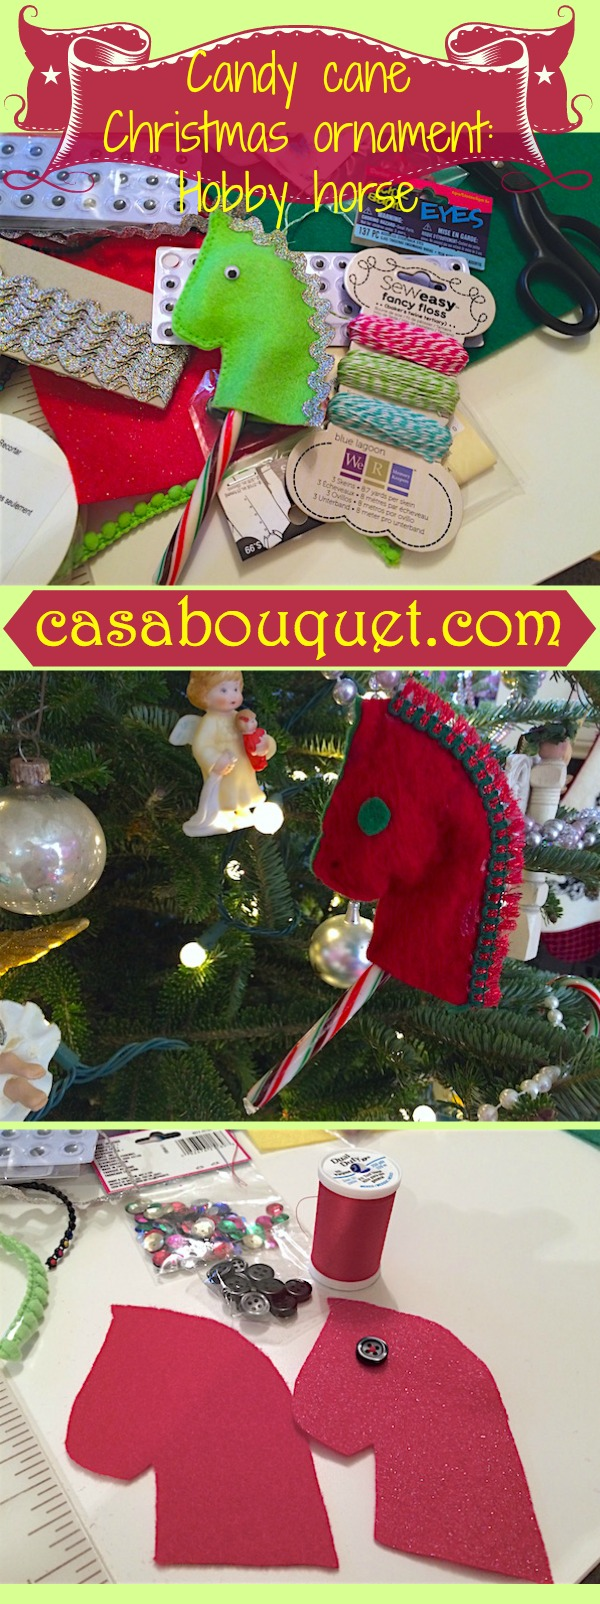 Candy cane Christmas ornament is a hobby horse made with felt and candy canes. Have fun being creative with trims!